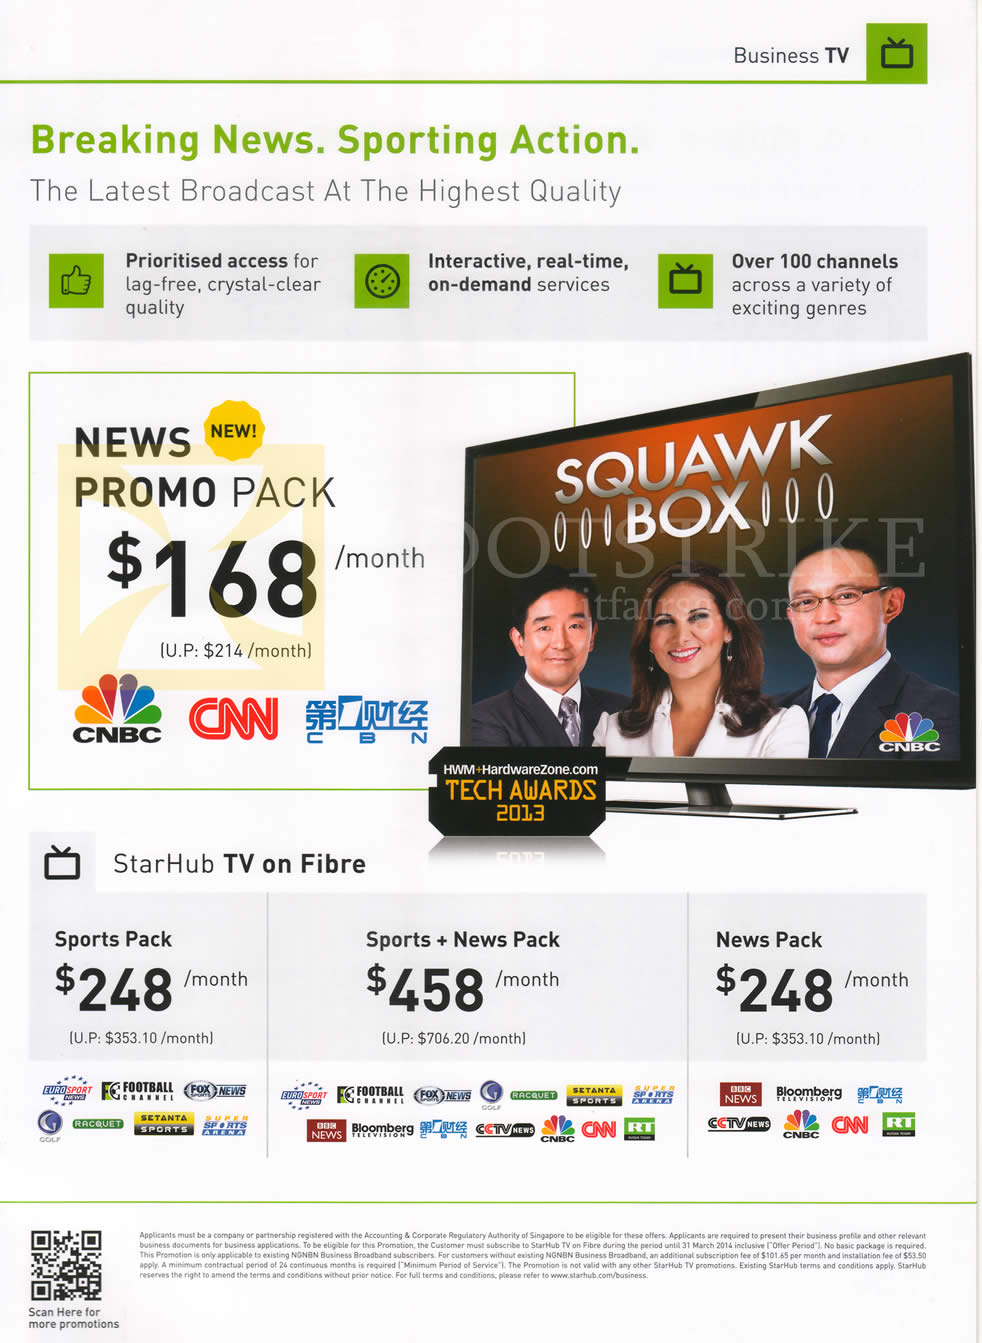 IT SHOW 2014 price list image brochure of StarHub Business TV Packages Sports, News